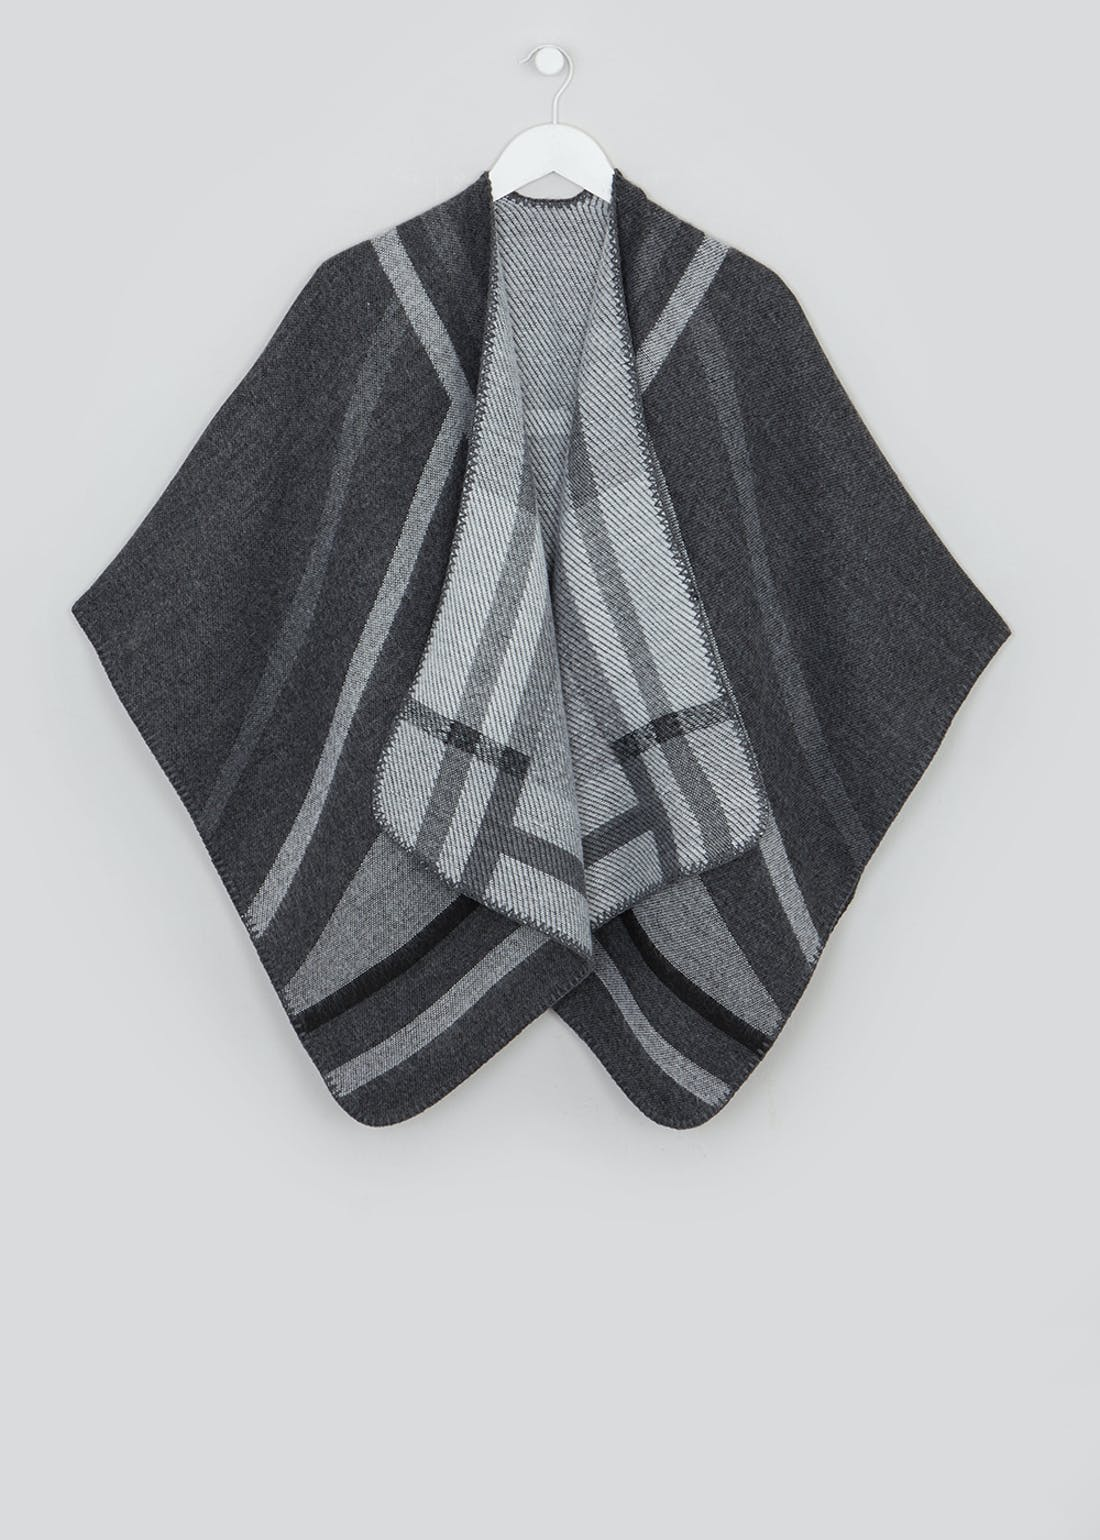 Abstract Print Shawl